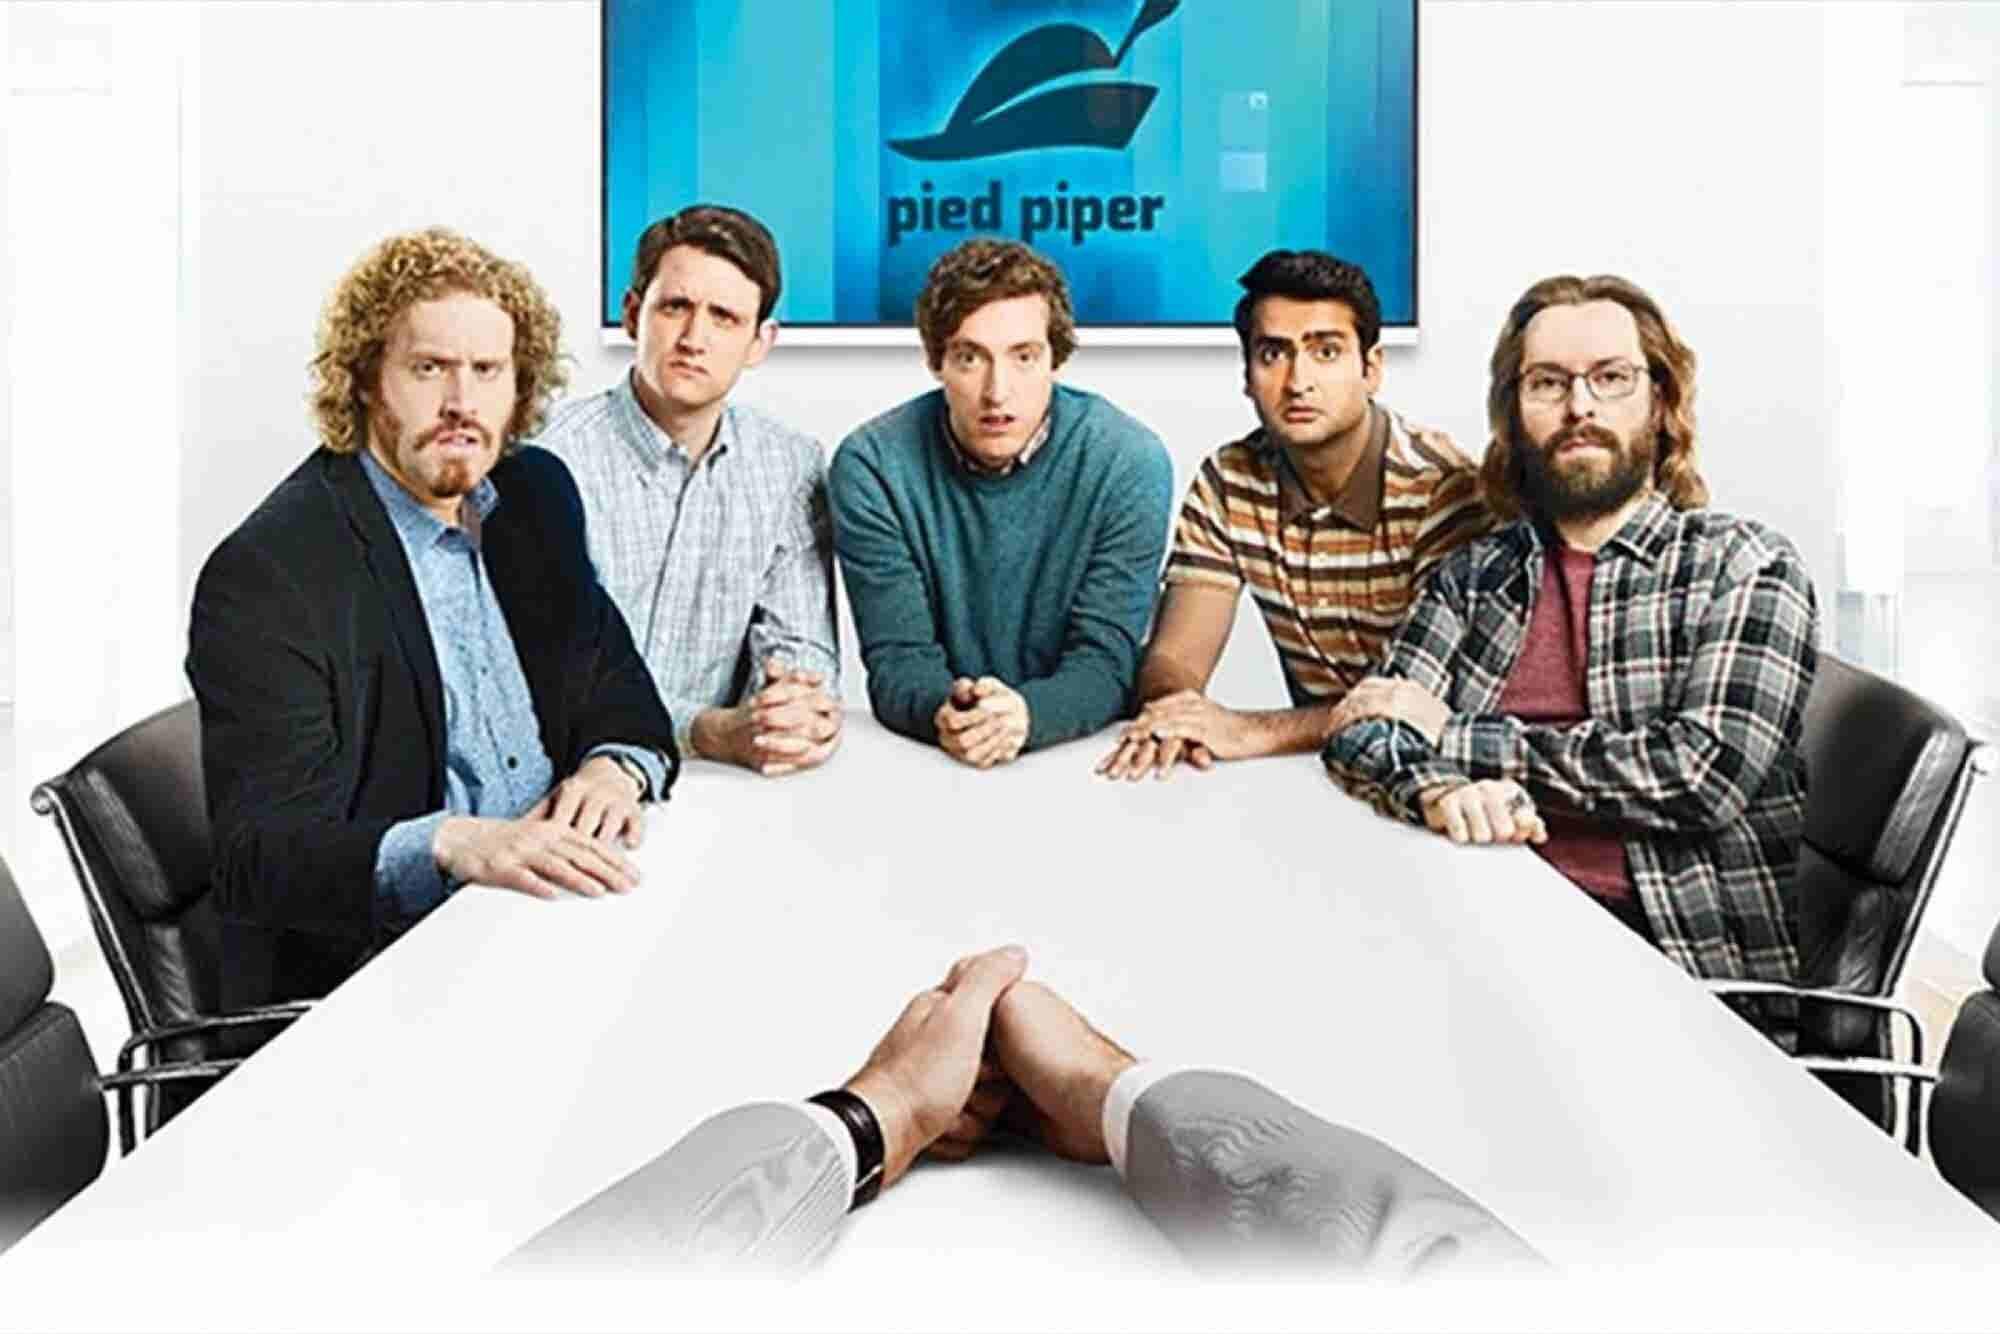 7 Ways 'Silicon Valley' Is an Epic HR Failure